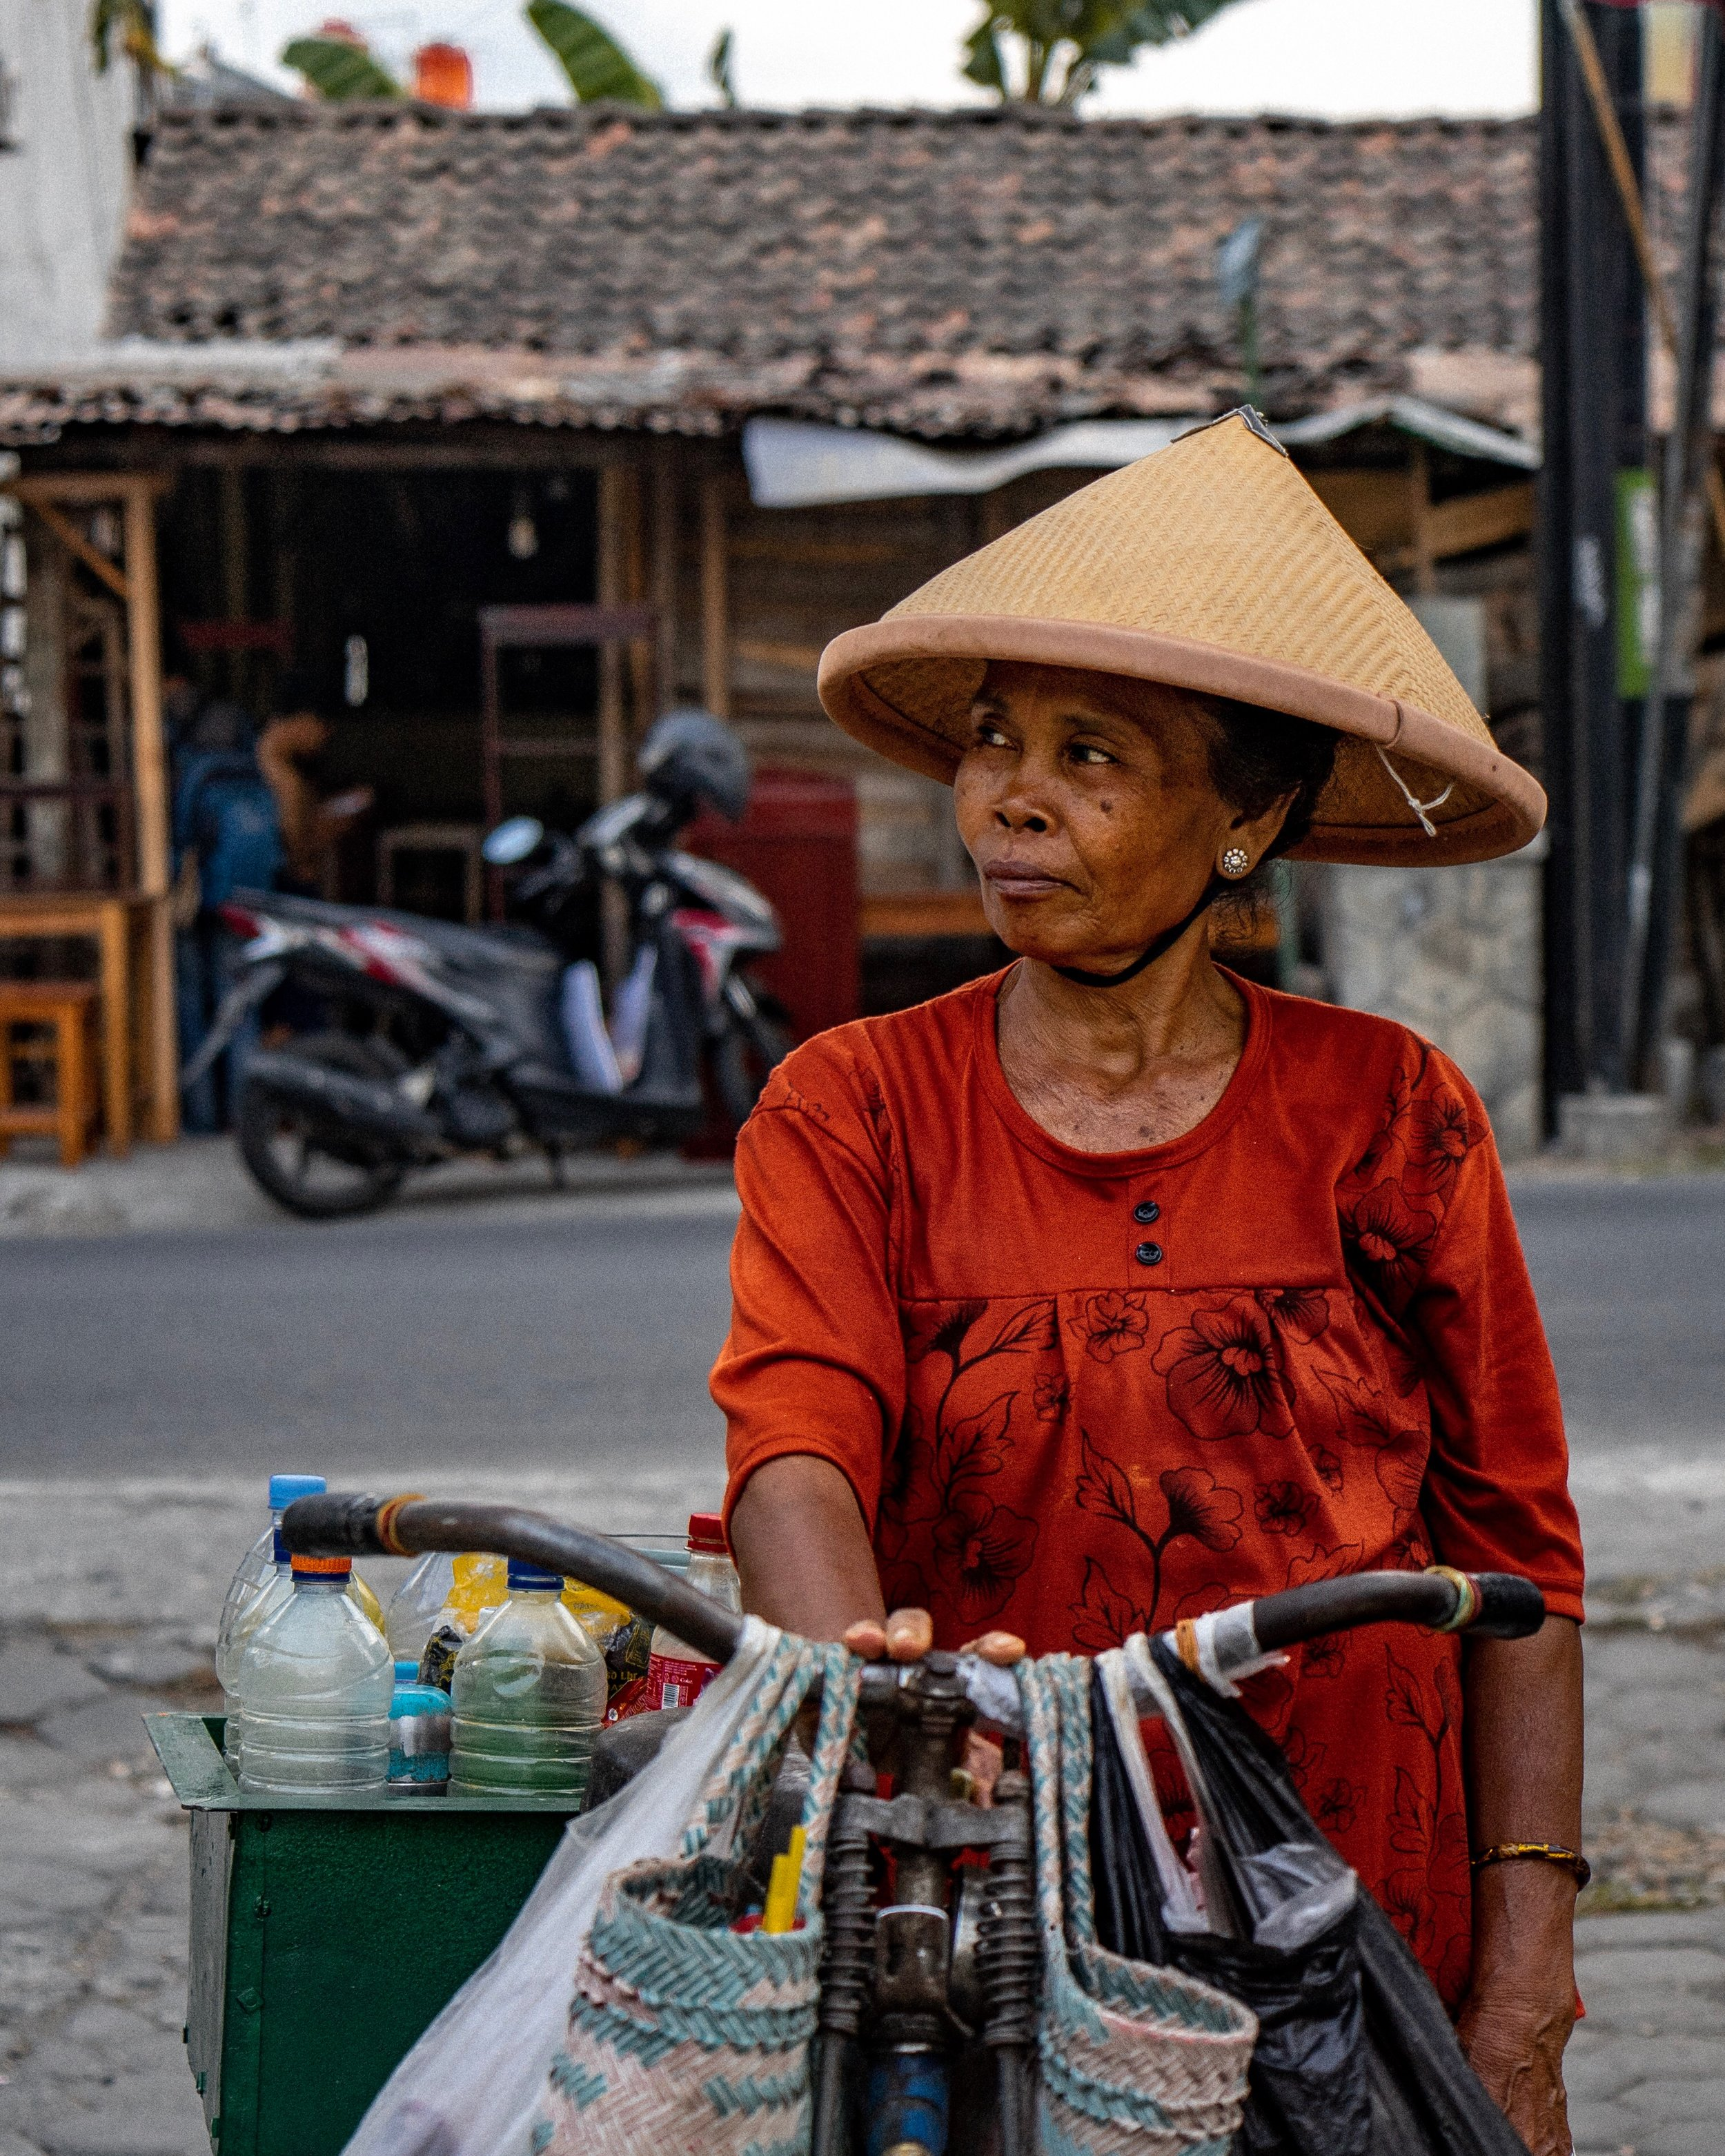 Indonesian people portraits - Ellie Dyduch